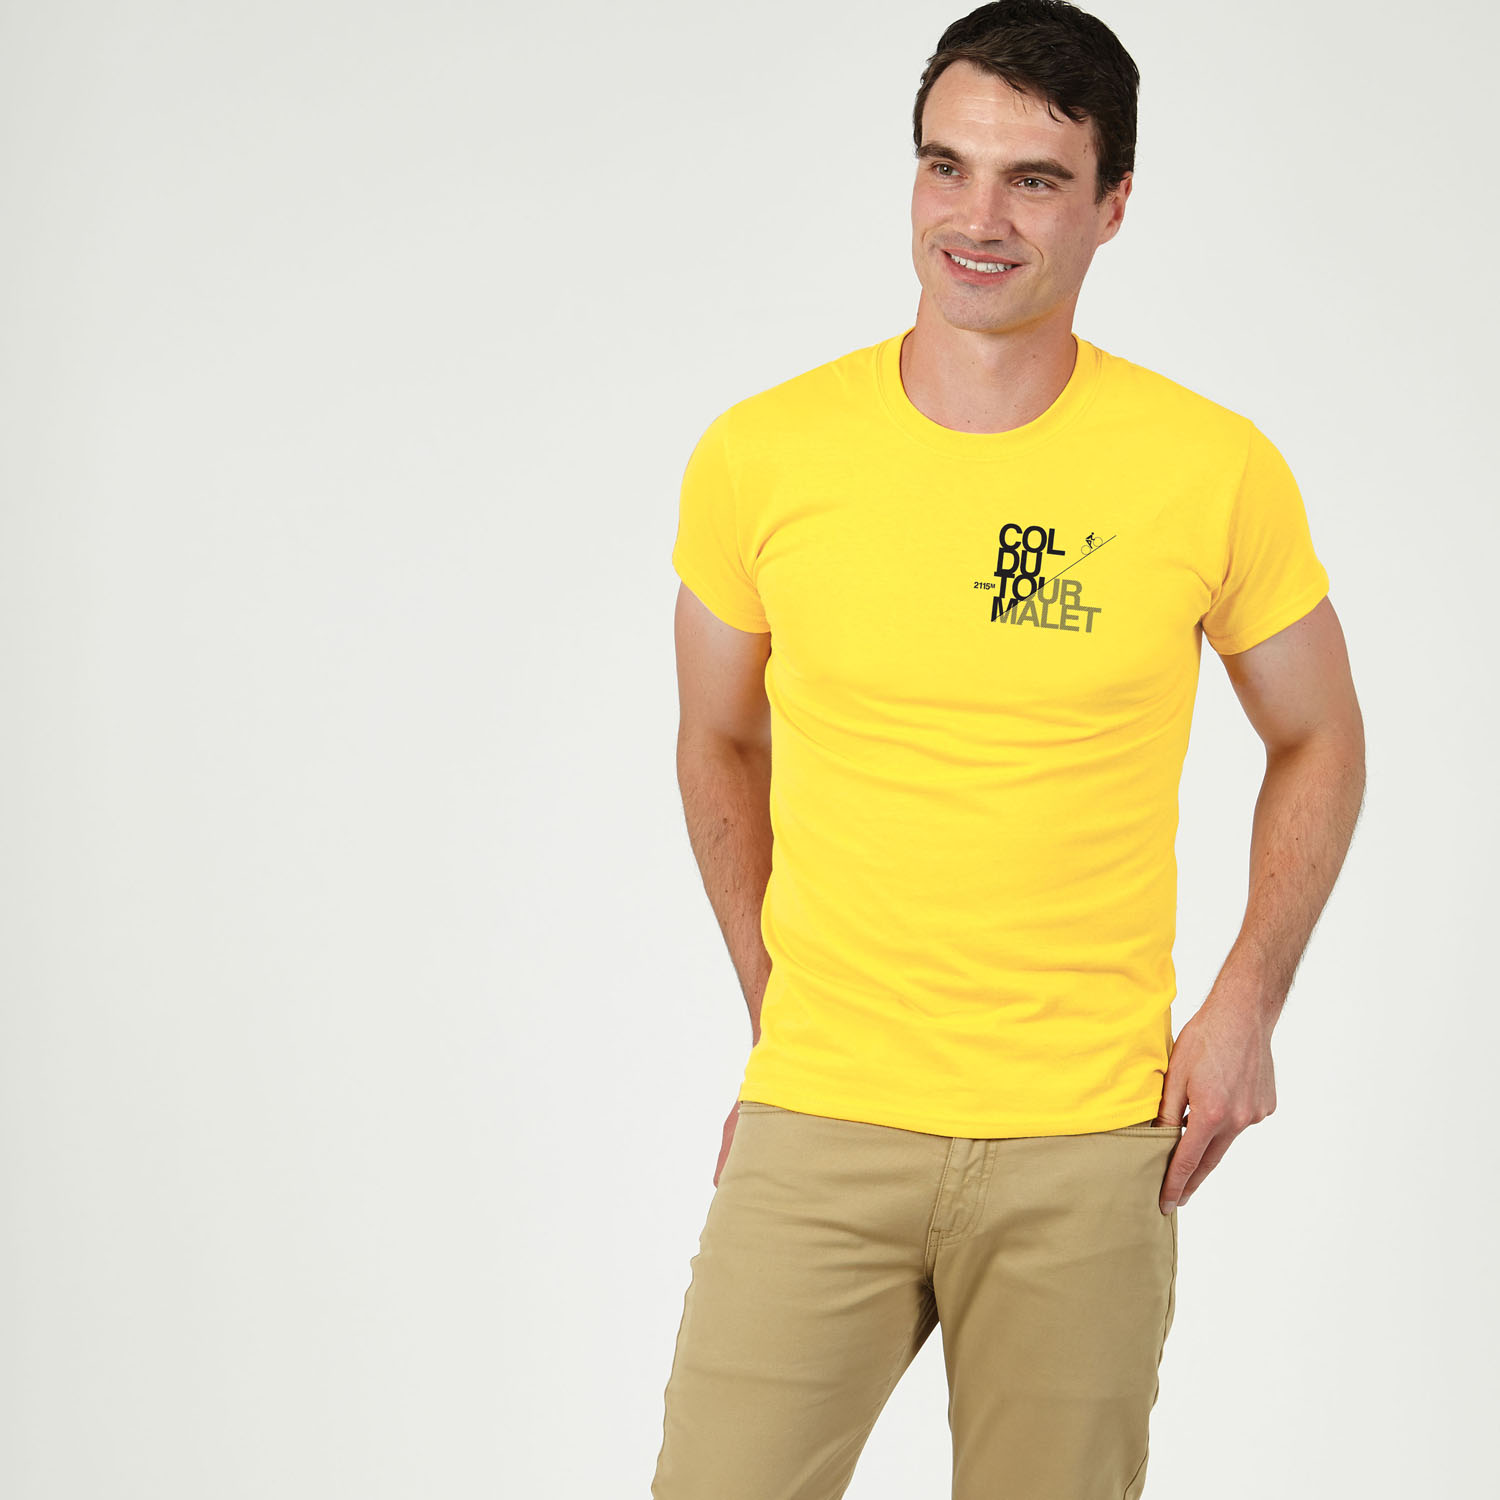 T-lab-Tourmalet-mens-t-shirt-yellow-model